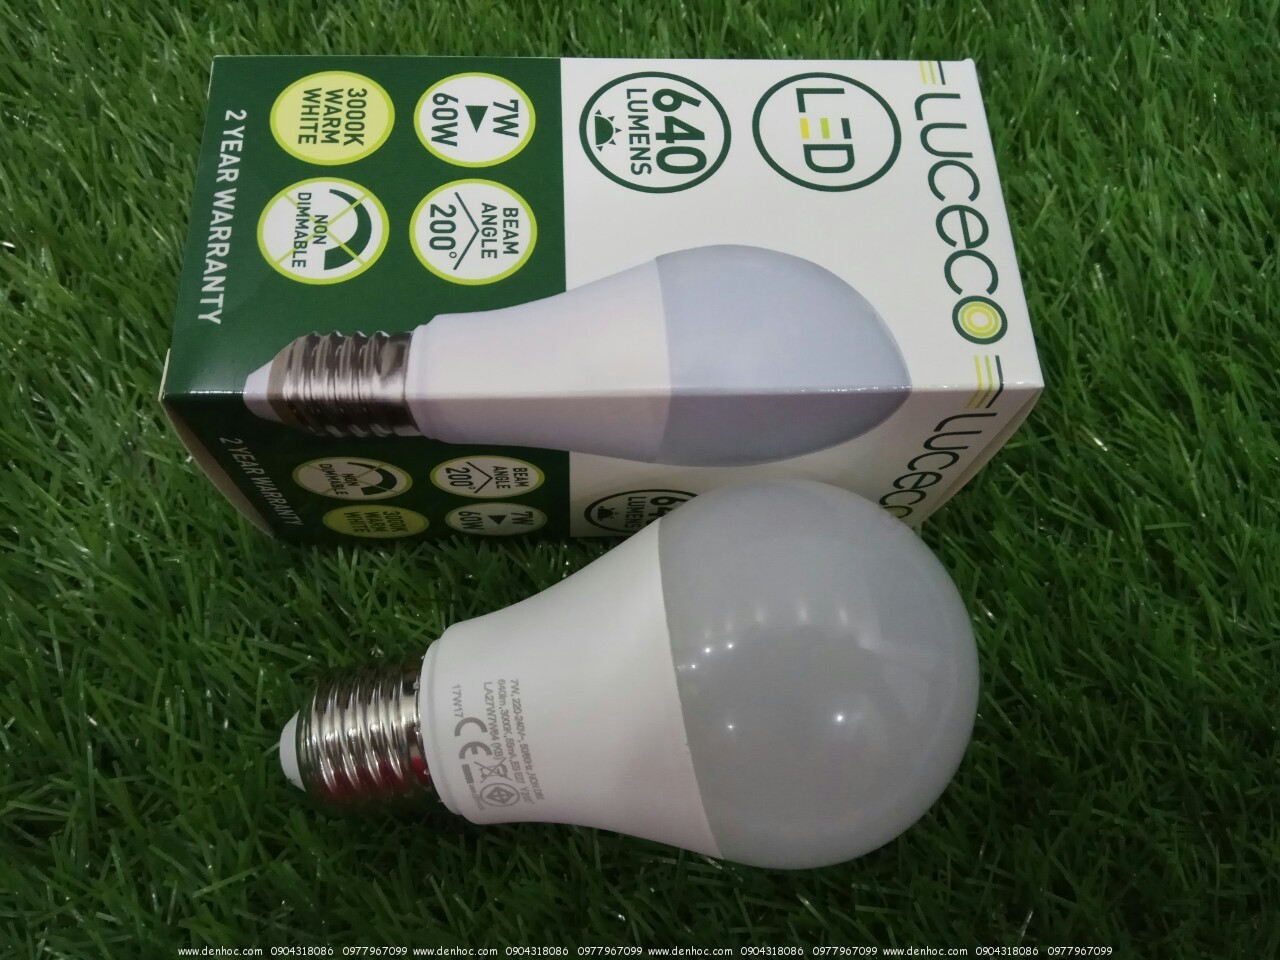 LED UK LUCECO 7W 640LUMEN